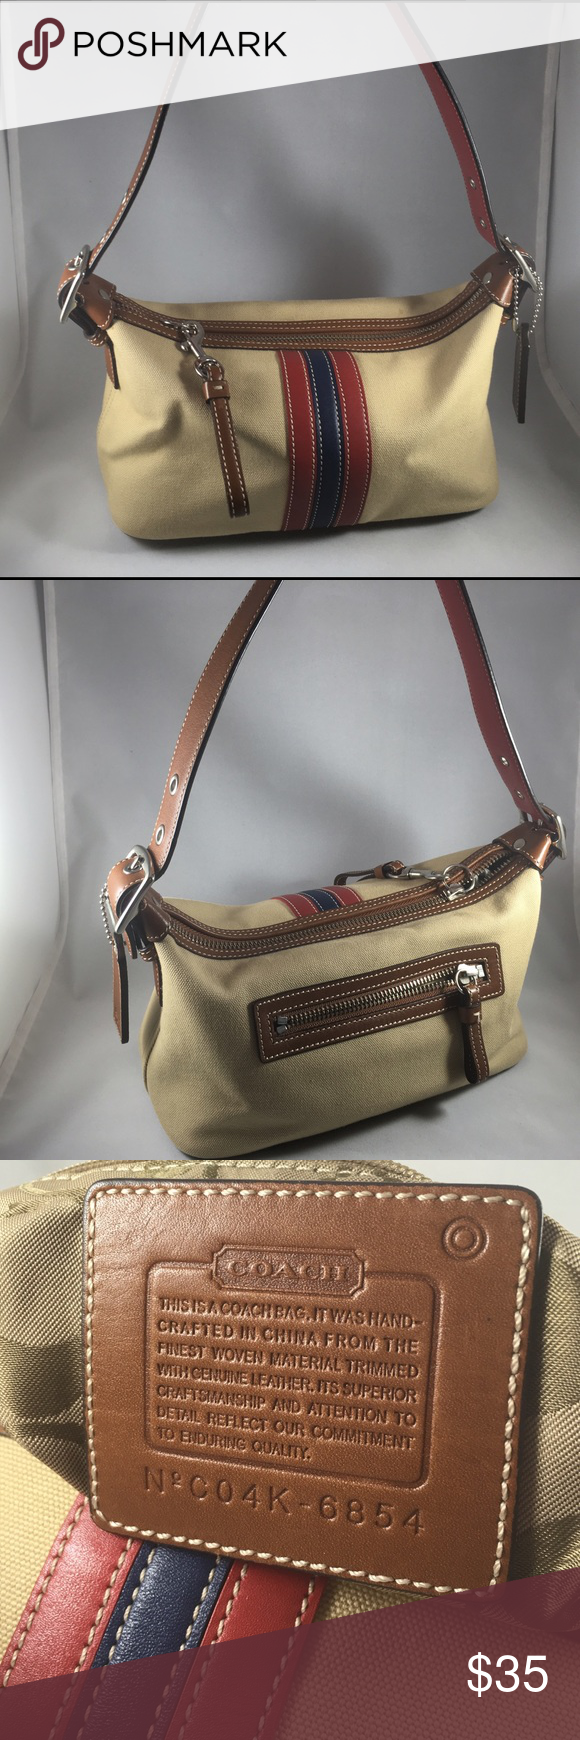 """Authentic 💯% Rare Coach Handbag✨in Light Taupe Authentic 💯% Coach Handbag✨in Light Taupe With red & blue stripes on the side.Back pocket. I love this small size bag. 😌Selling it because I believe some else can who can use it and take care of it as I did. 💯❗😌💖️Pre Loved !🌺     Measurements H 5"""" x L 9""""x W 4 1/2"""" Coach Bags Mini Bags"""